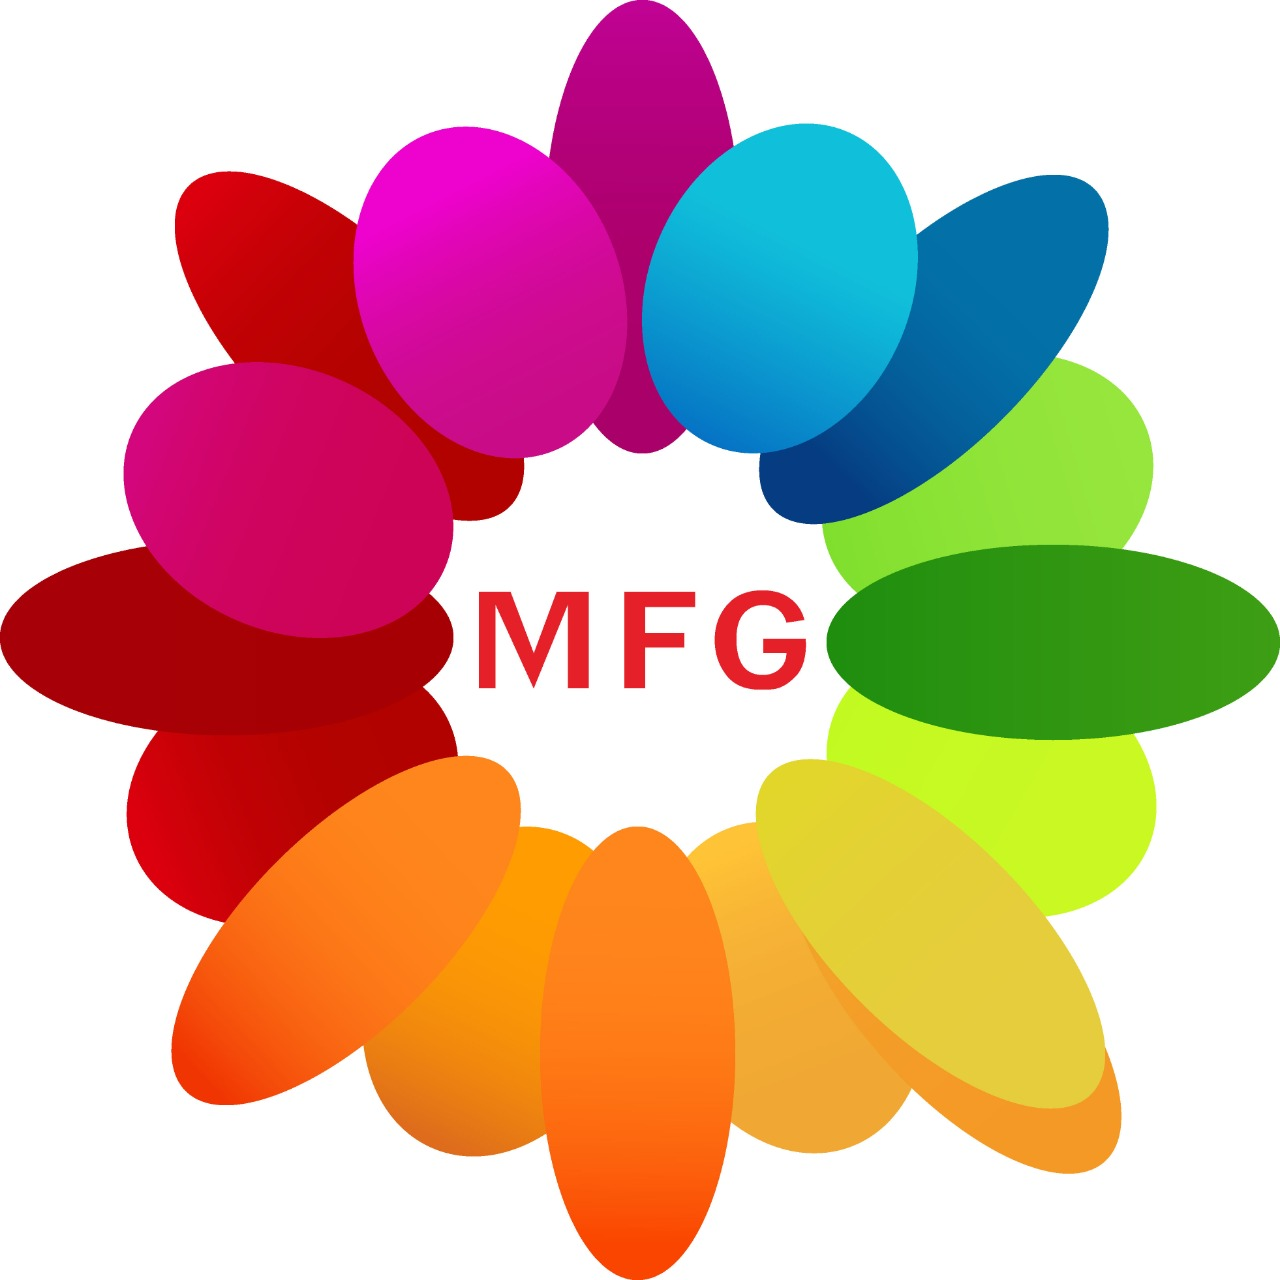 Bunch of 20 white roes with box of 16 pcs rocher ferrero chocolates